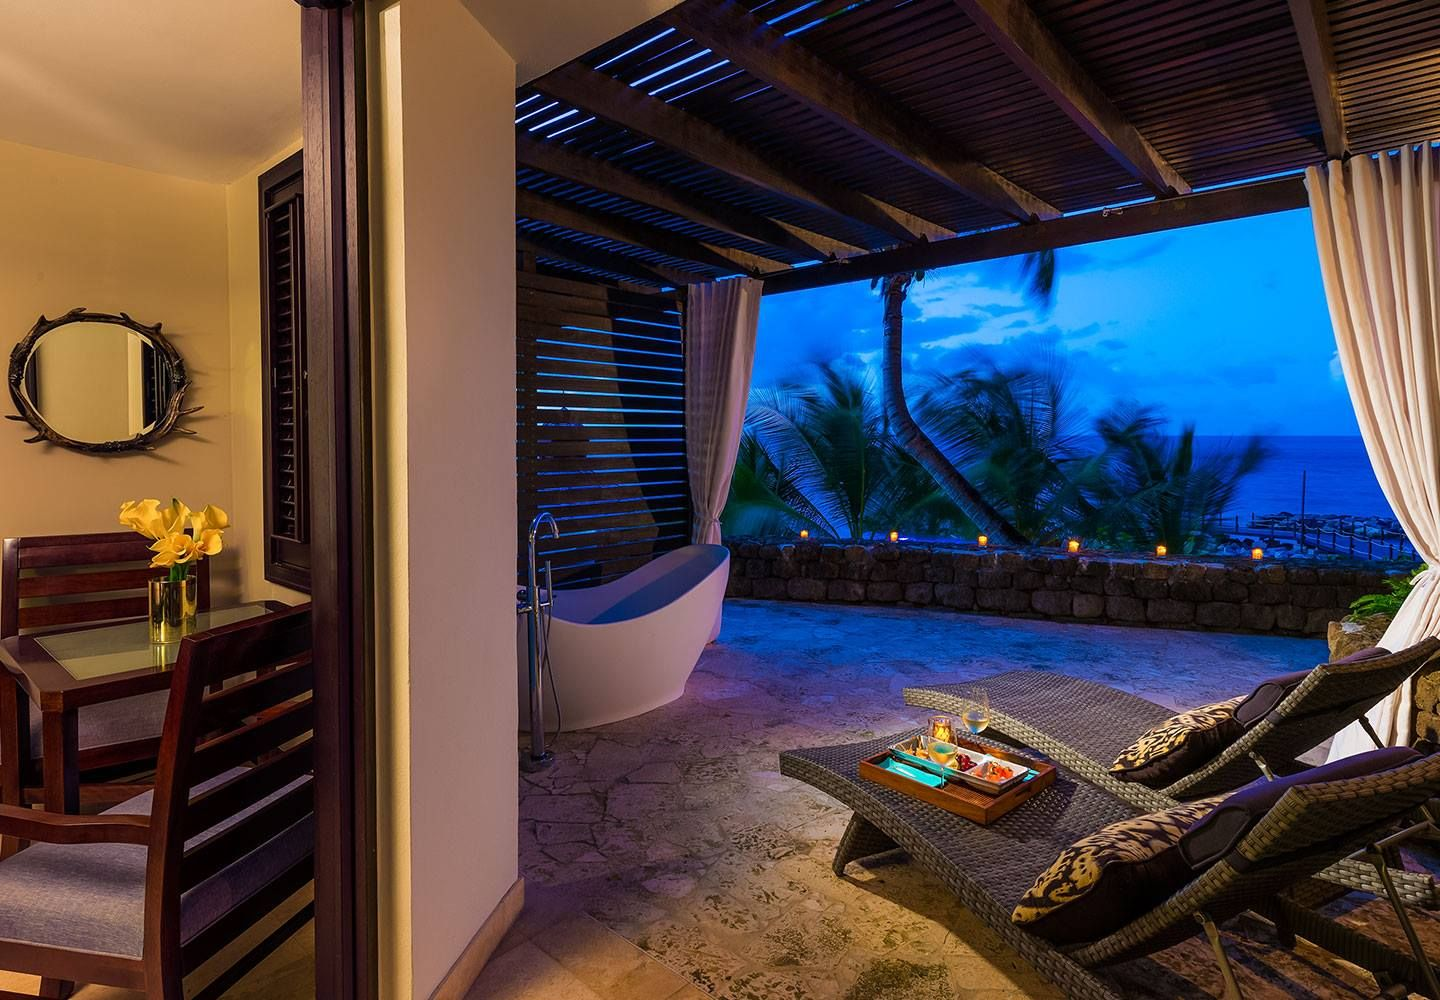 Pink Gin Oceanview Room with Veranda Tranquility Soaking Tub. #Sandals #Grenada #UnlimitedTrips